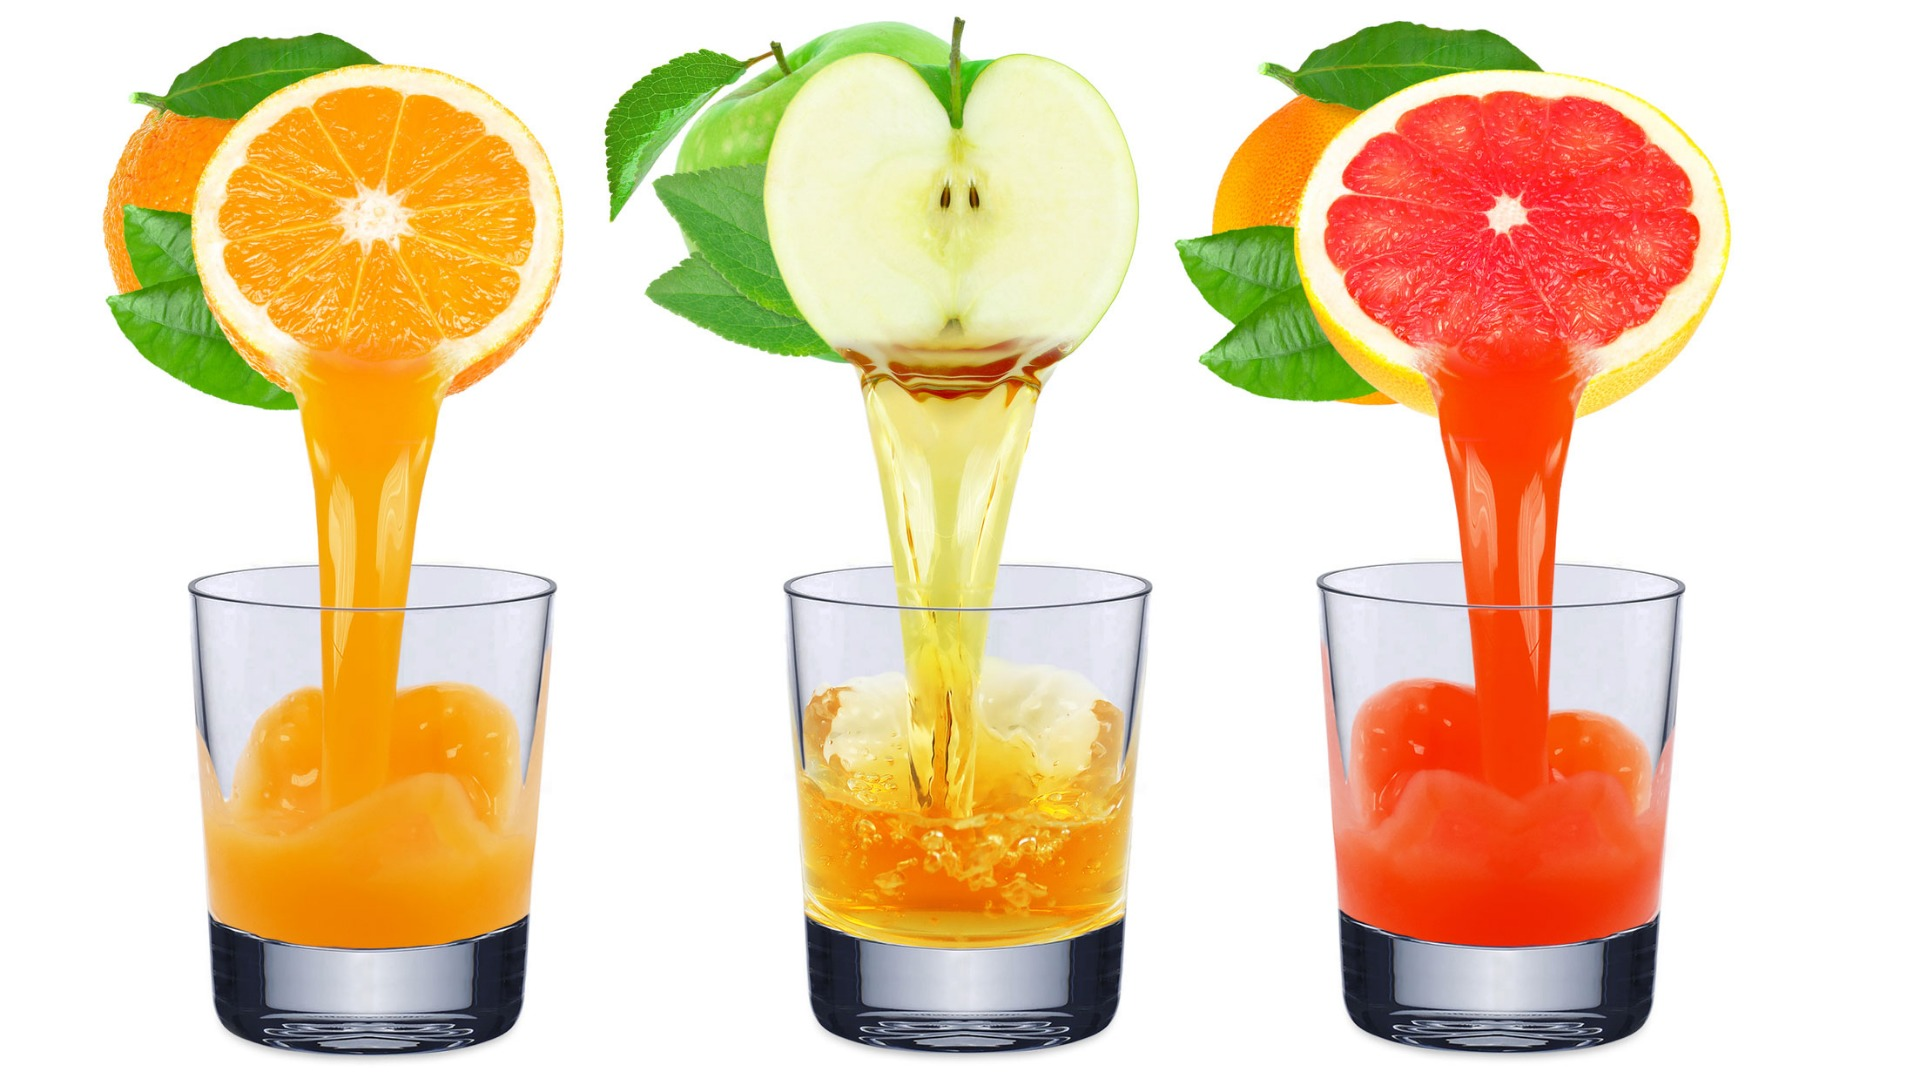 Does a new study suggest fruit juice increases cancer risk? Not exactly…